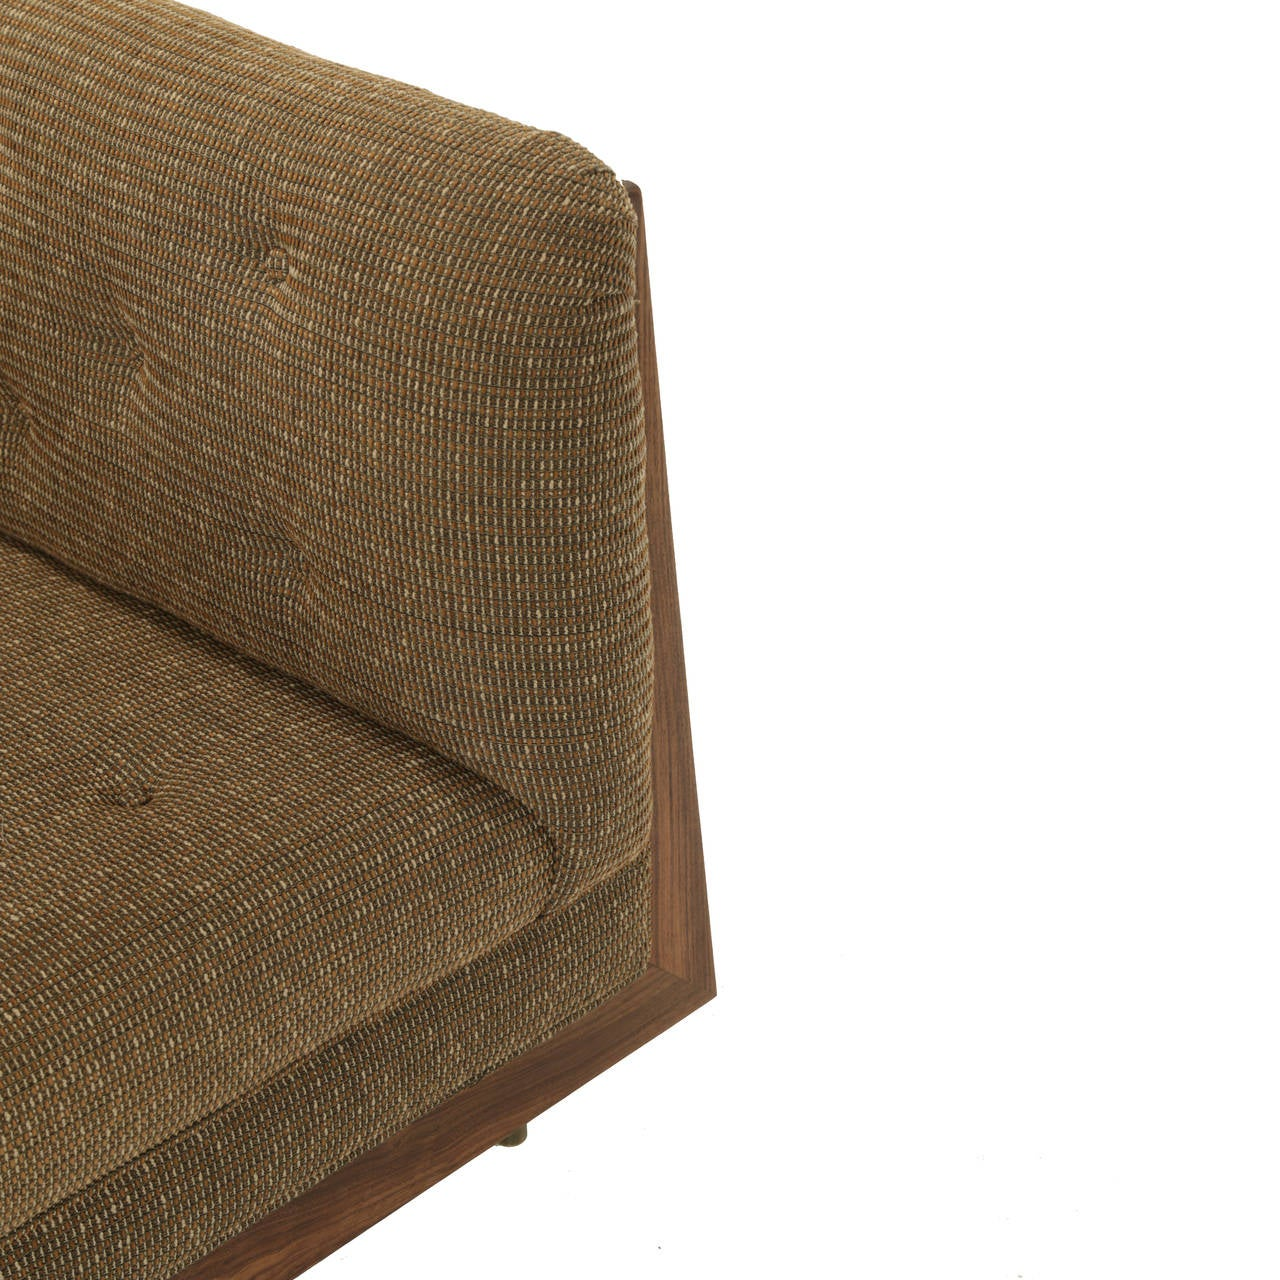 Famechon Sofa With Channeled Back And Seat Walnut Legs: Hannah Sofa With Walnut Spines And Bronze Legs By Thomas